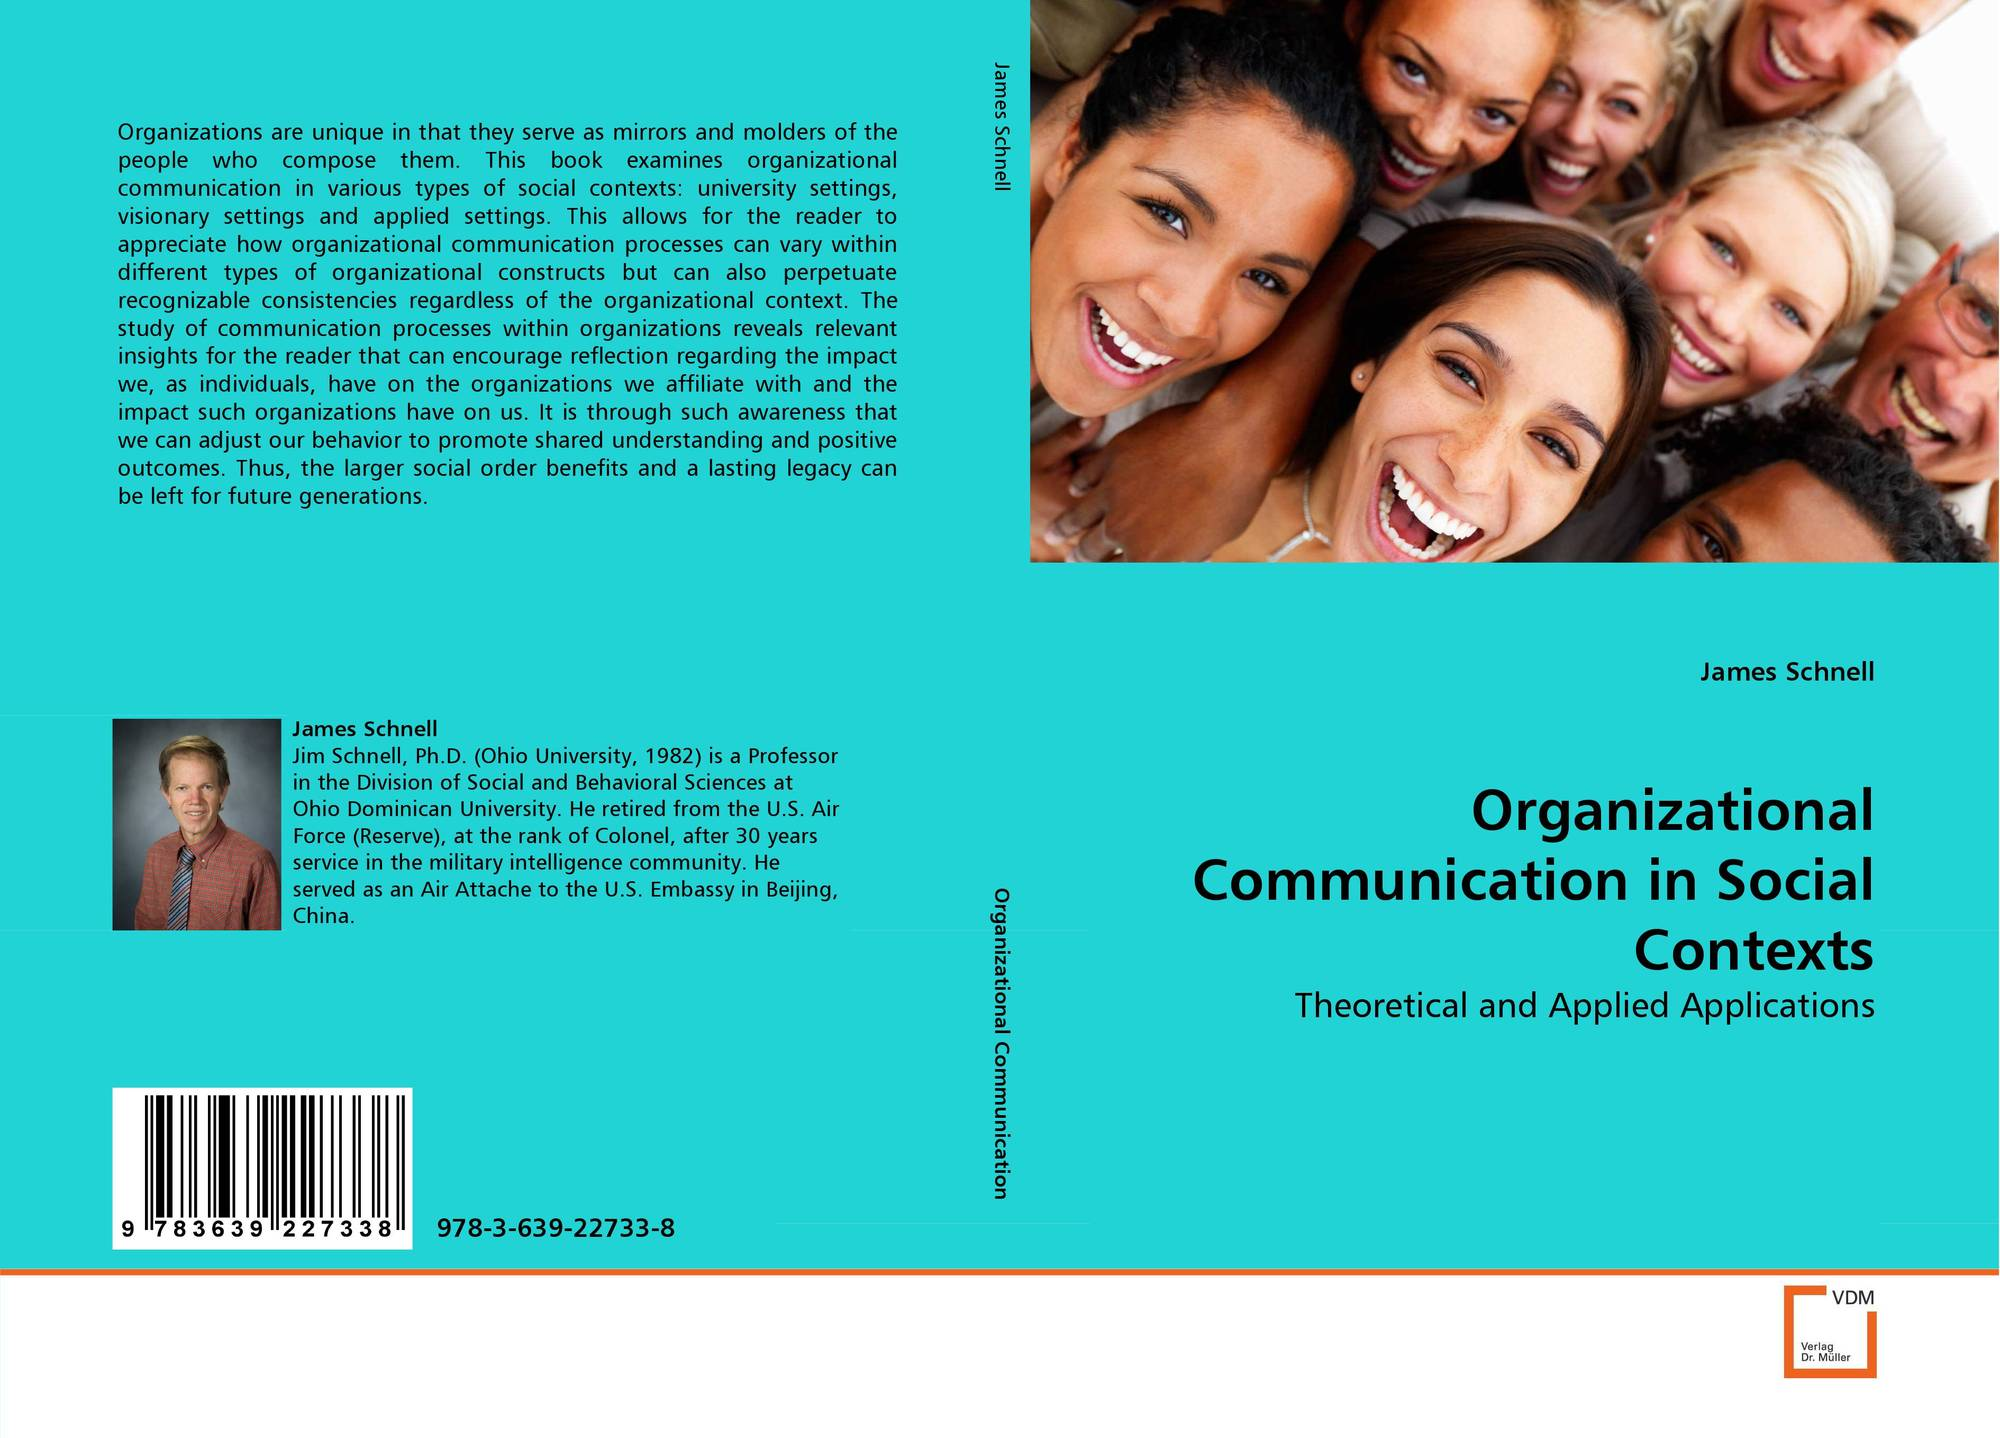 role of communication in an organization Understanding the role of communications in an organization: 11: explain the communication processes used within my organization (tesco): communication process is the process of sending data from one source to another intentionally with a meaning perceived by the receiver.